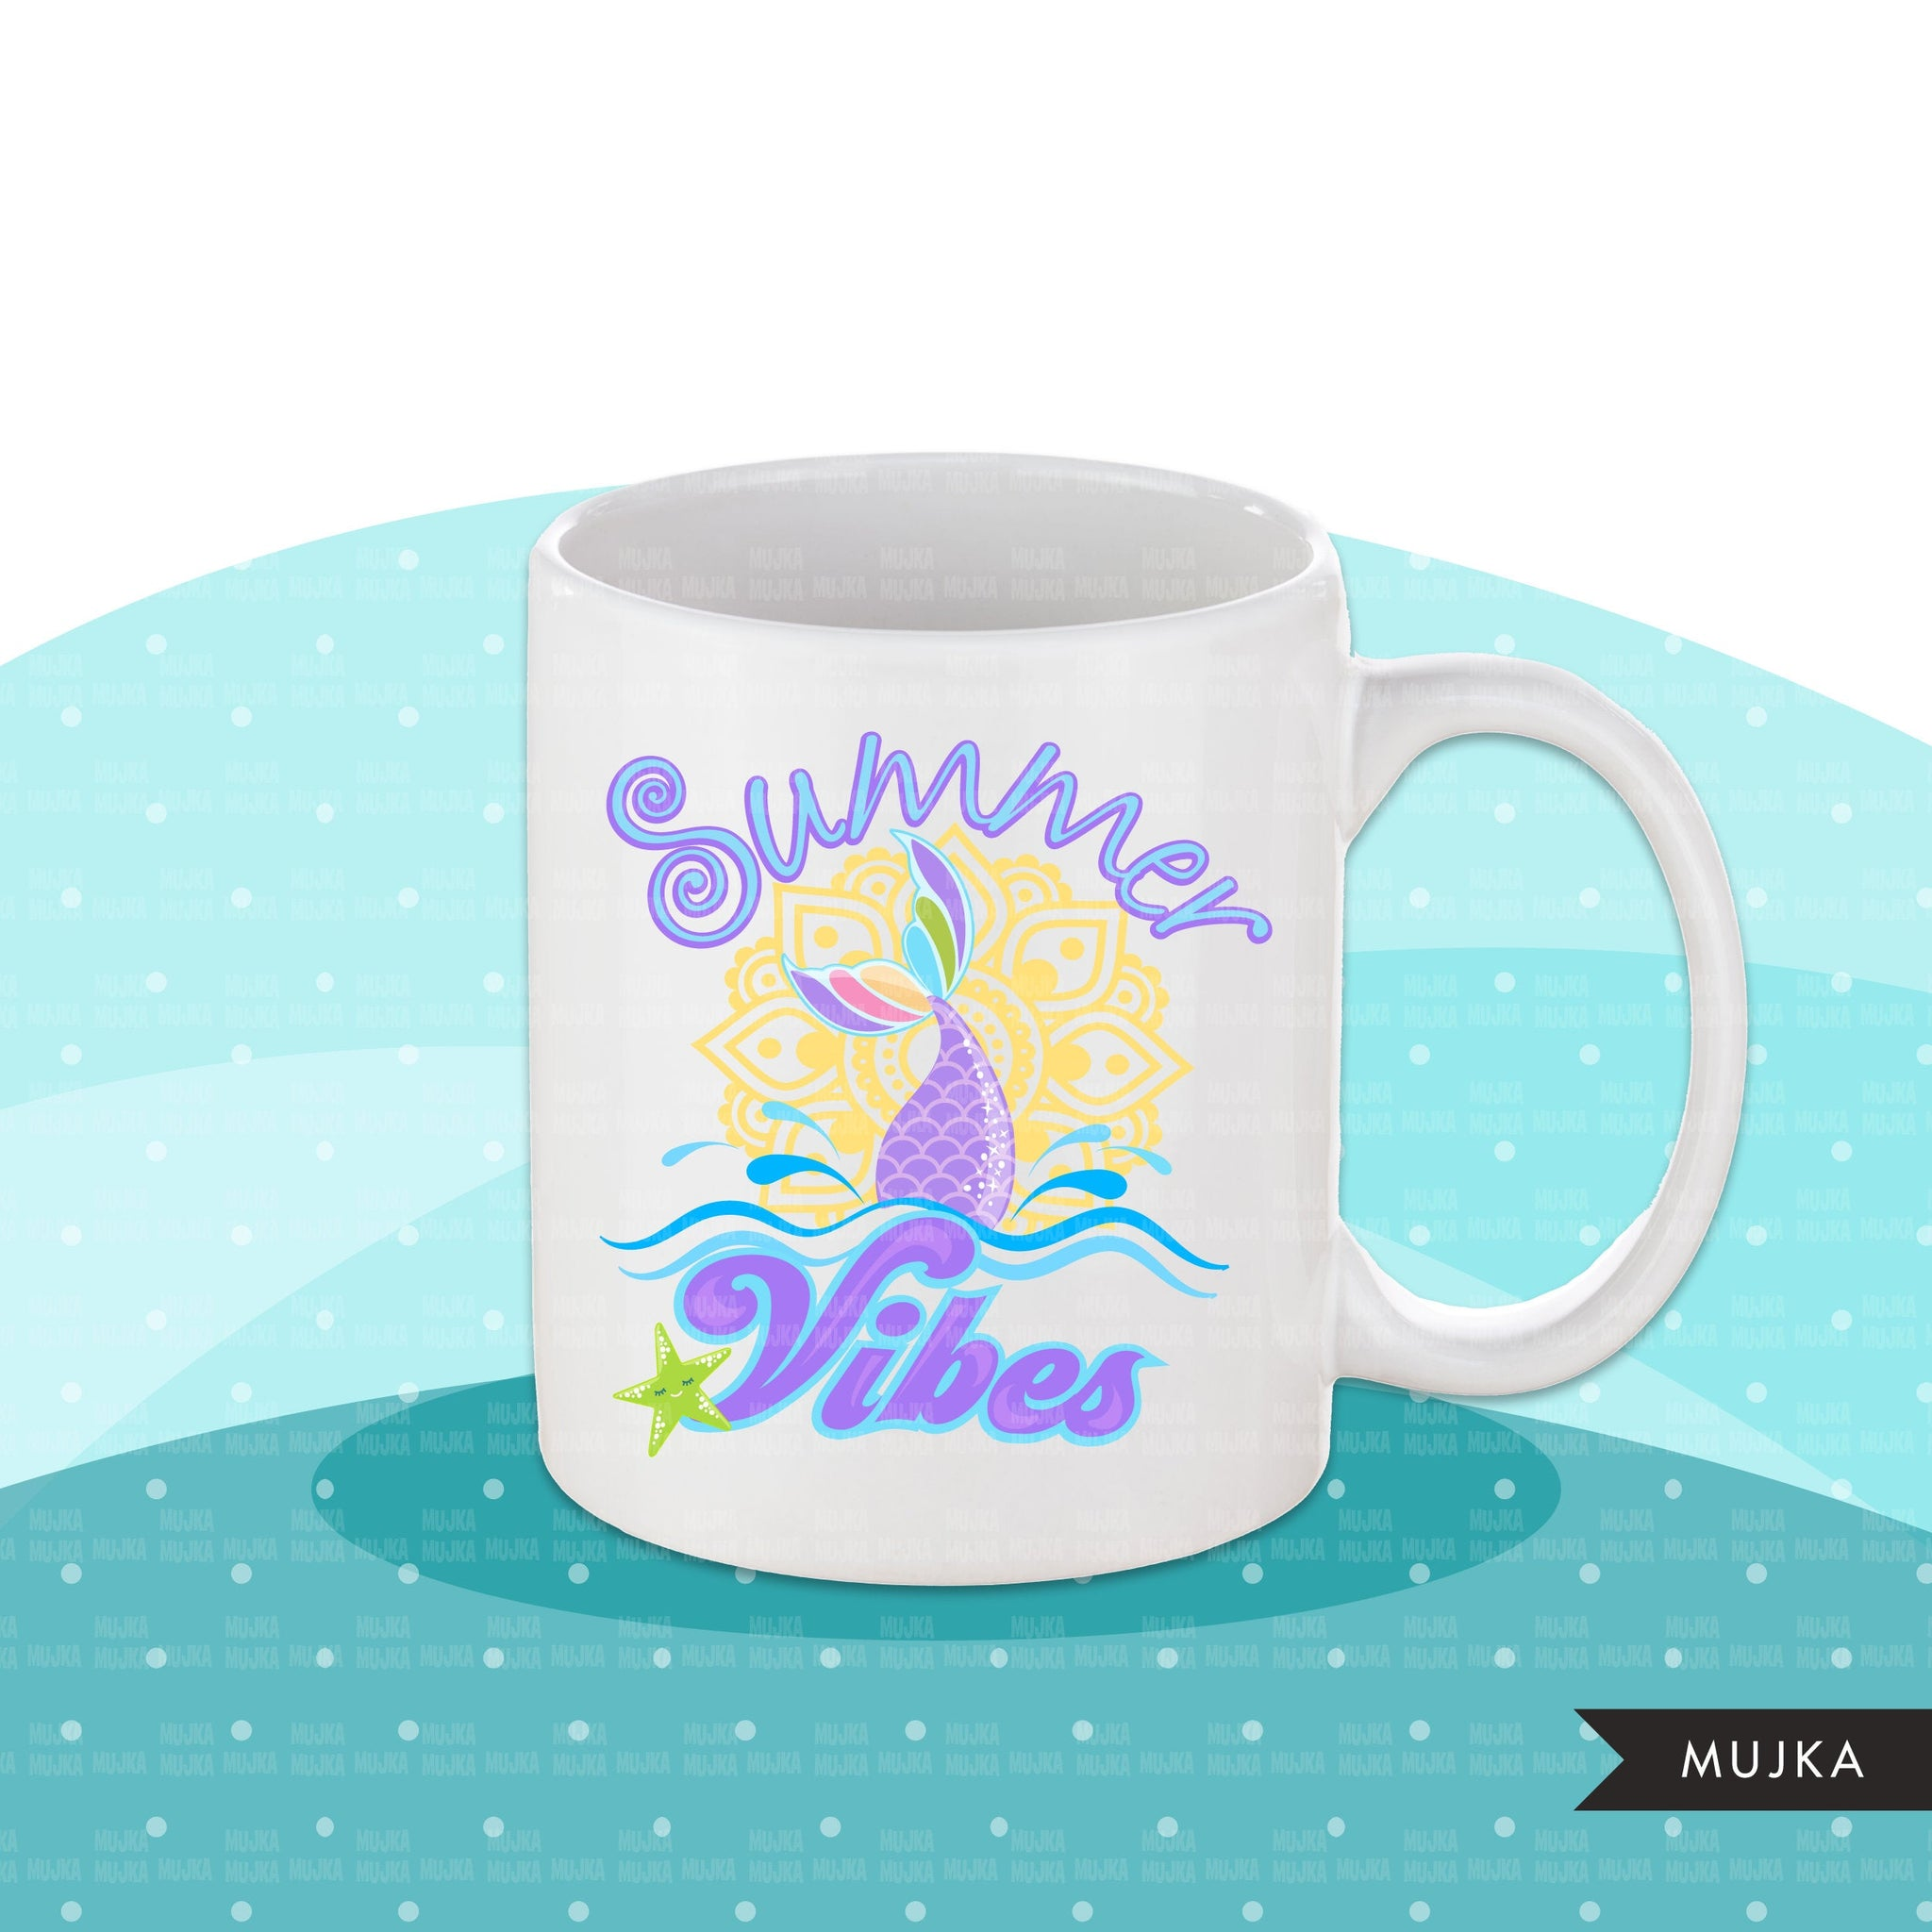 Summer vibes clipart, summer vibes sublimation designs digital download, summer vibes mermaid png, summer shirt digital download for cricut